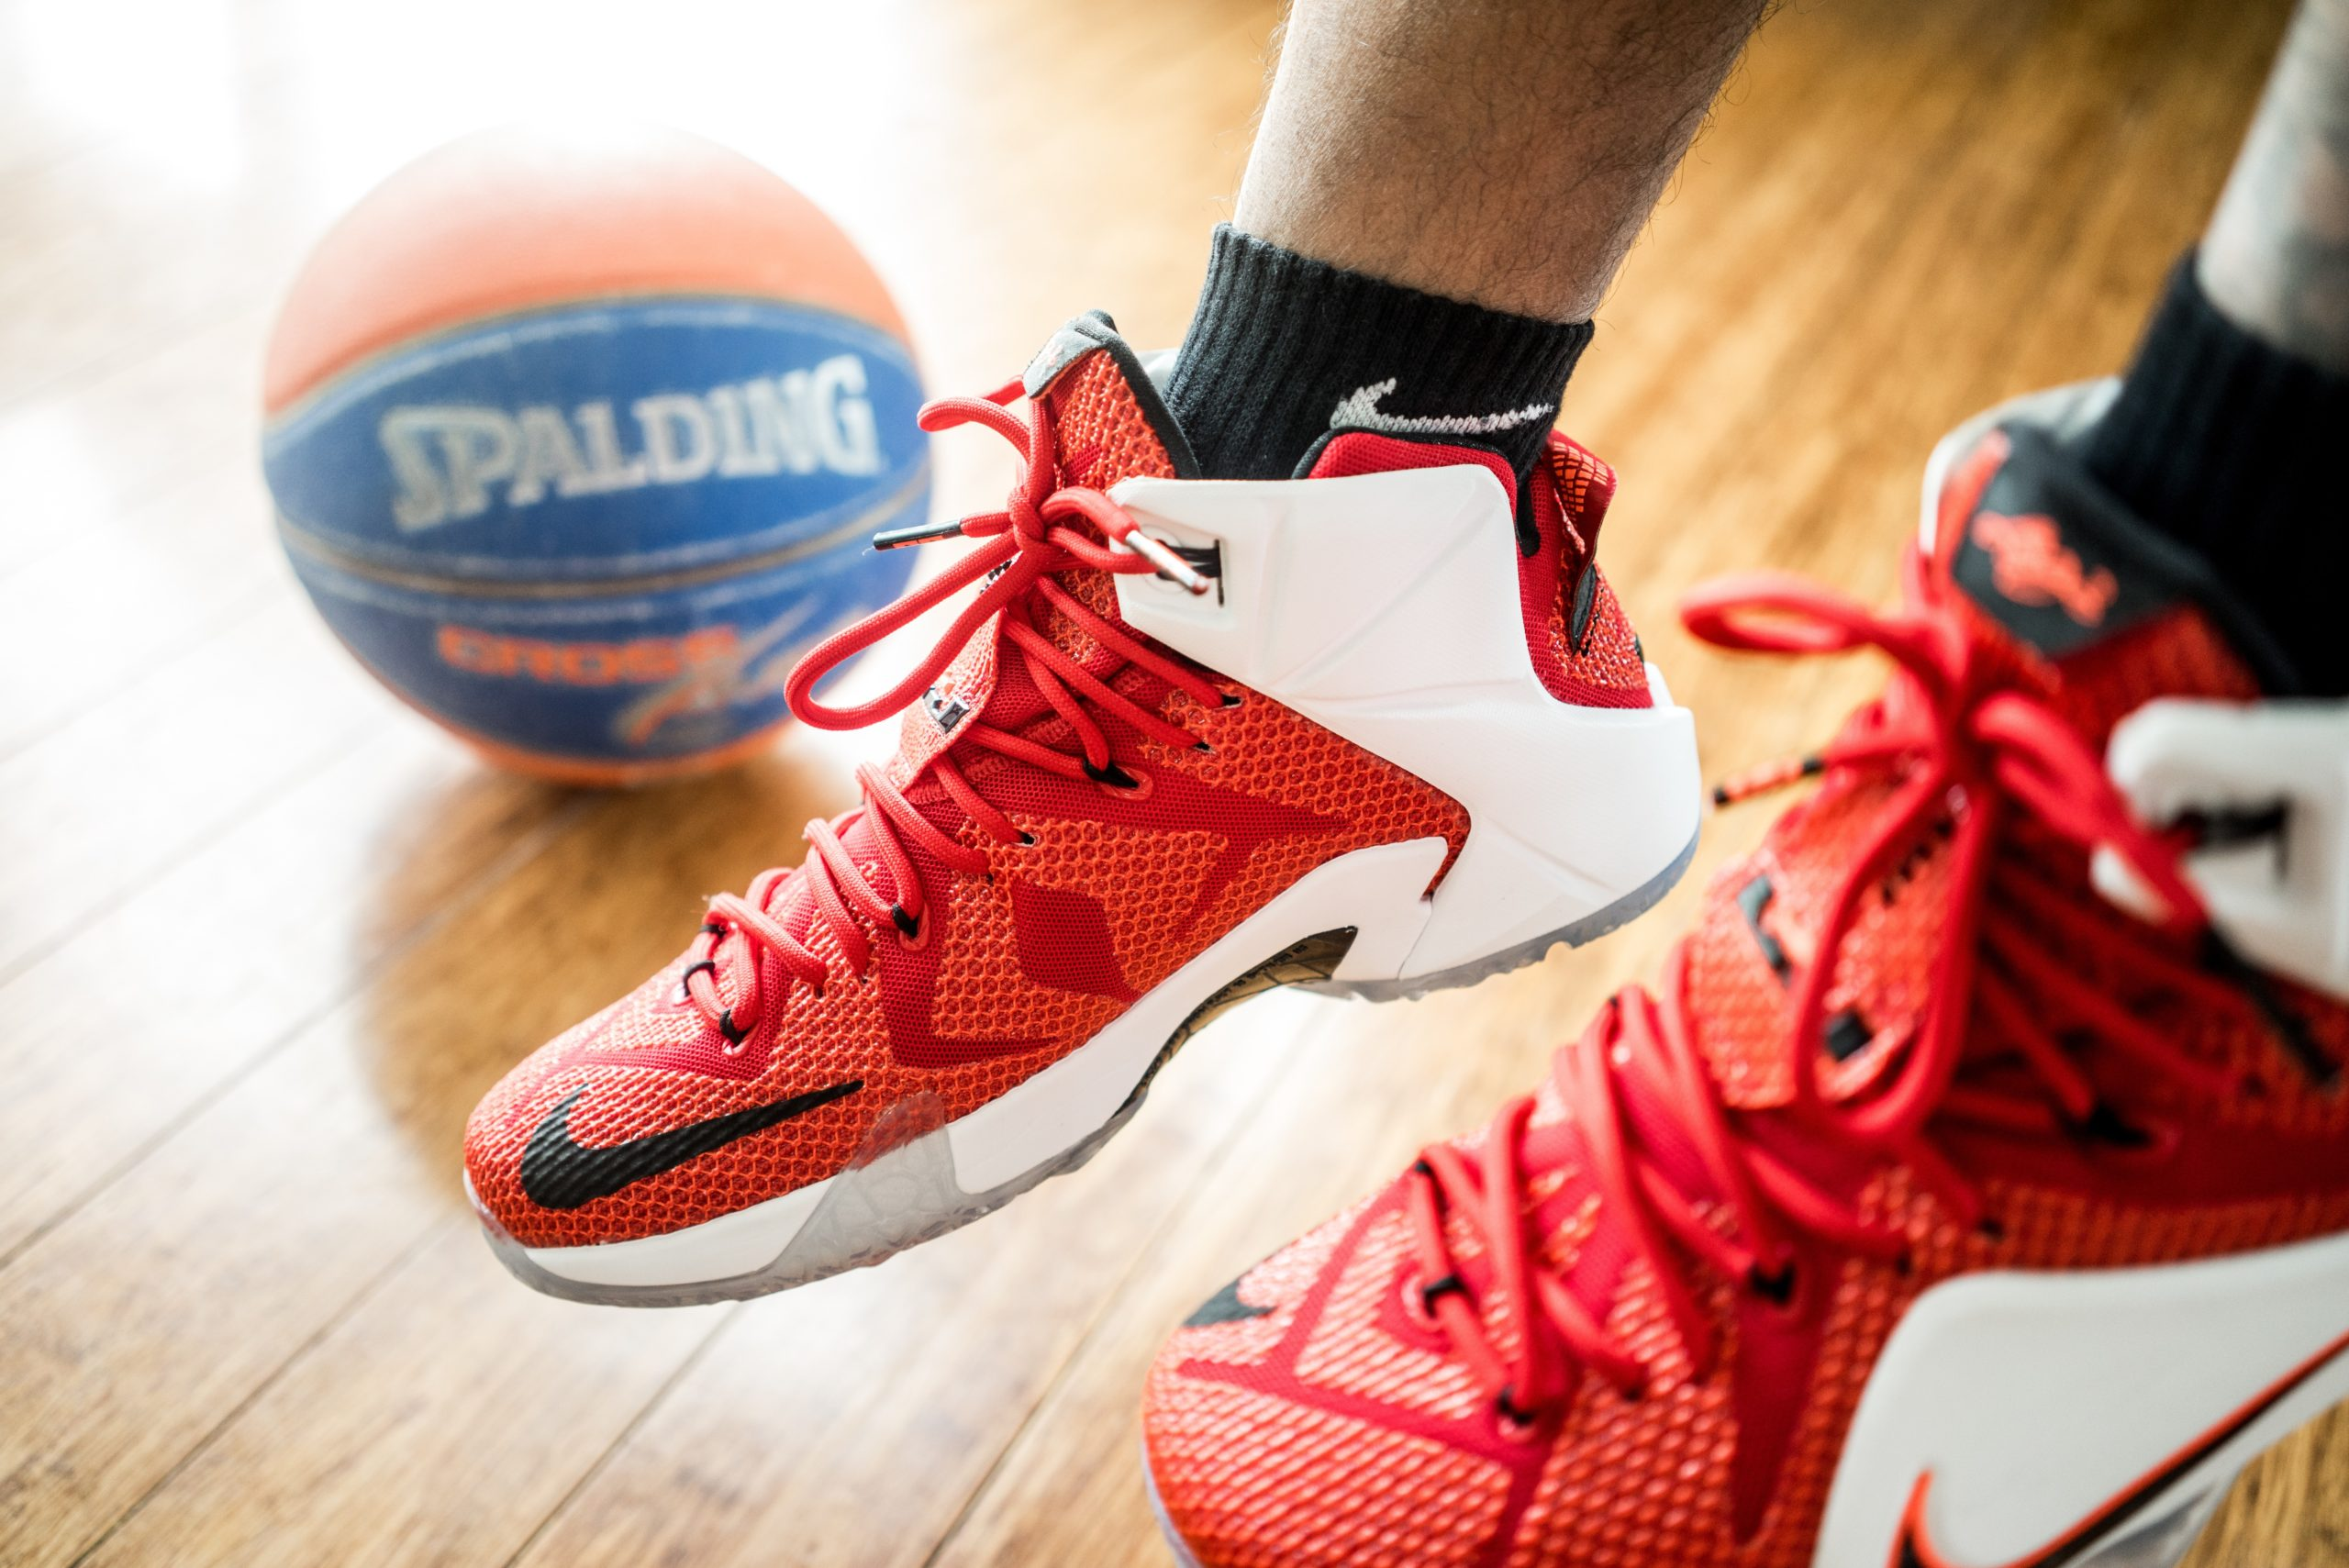 Best Basketball Shoes for Big Guys